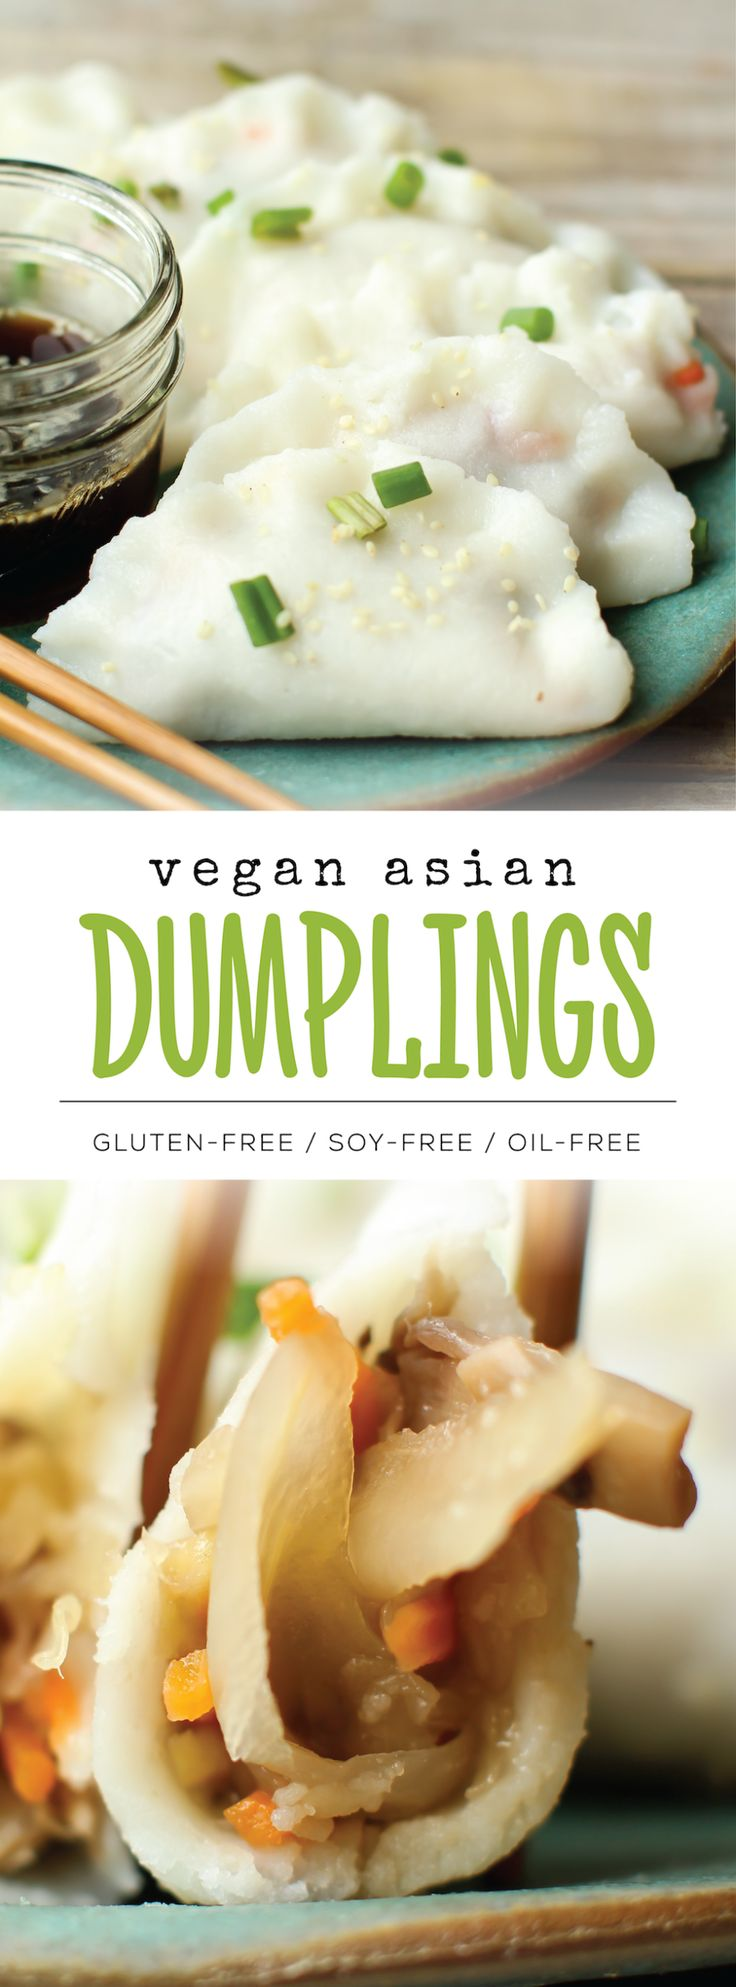 Veggie dumplings (or potstickers) with an egg-free and gluten-free 4 ingredient wrapper! Customize with your favorite fillings for an easy Asian meal at home...